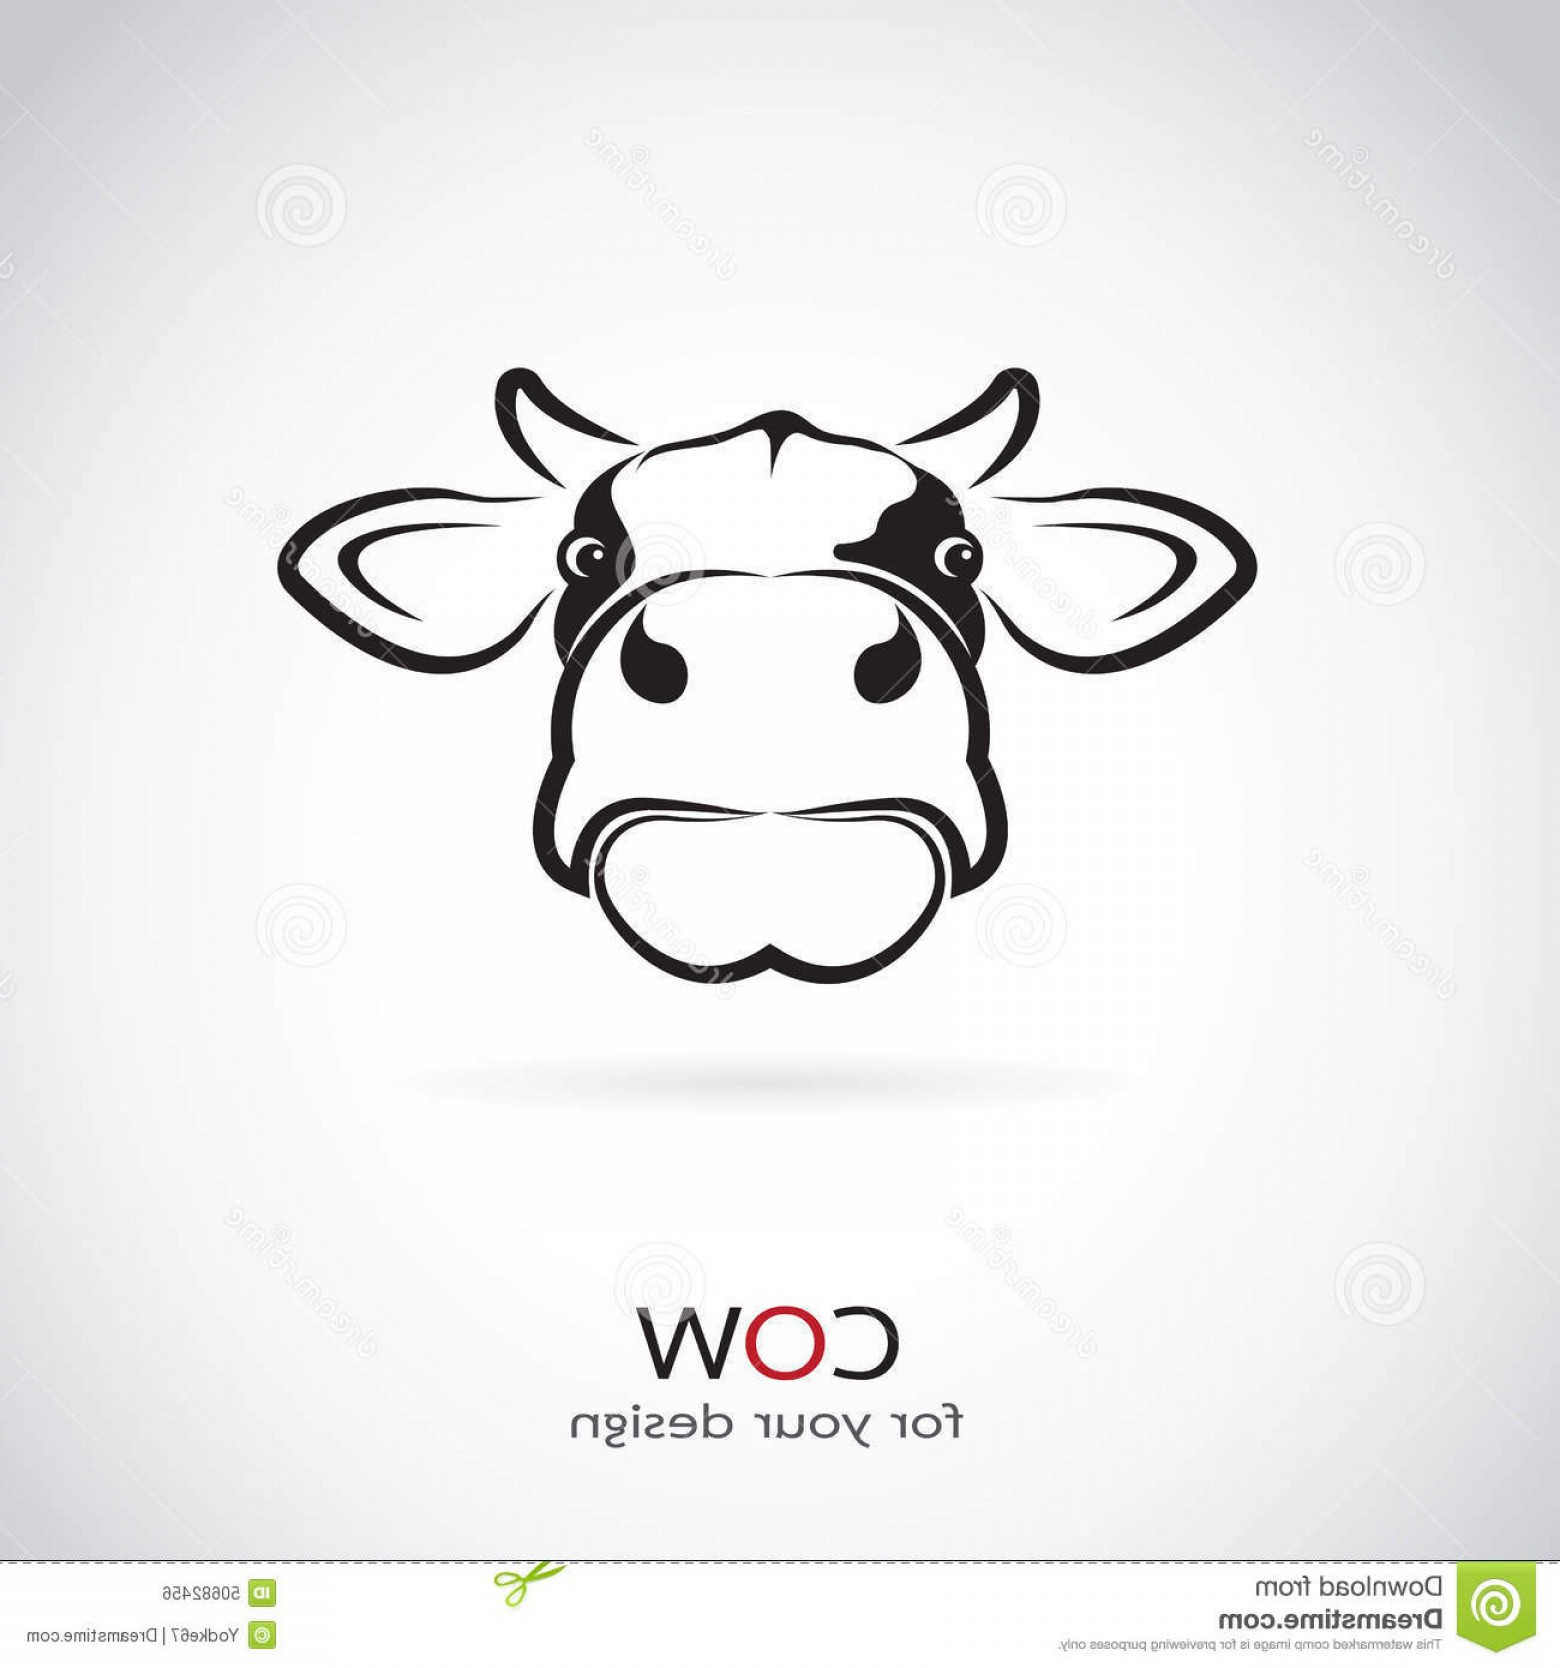 Stock Illustration Vector Image Cow Head White Background Image.